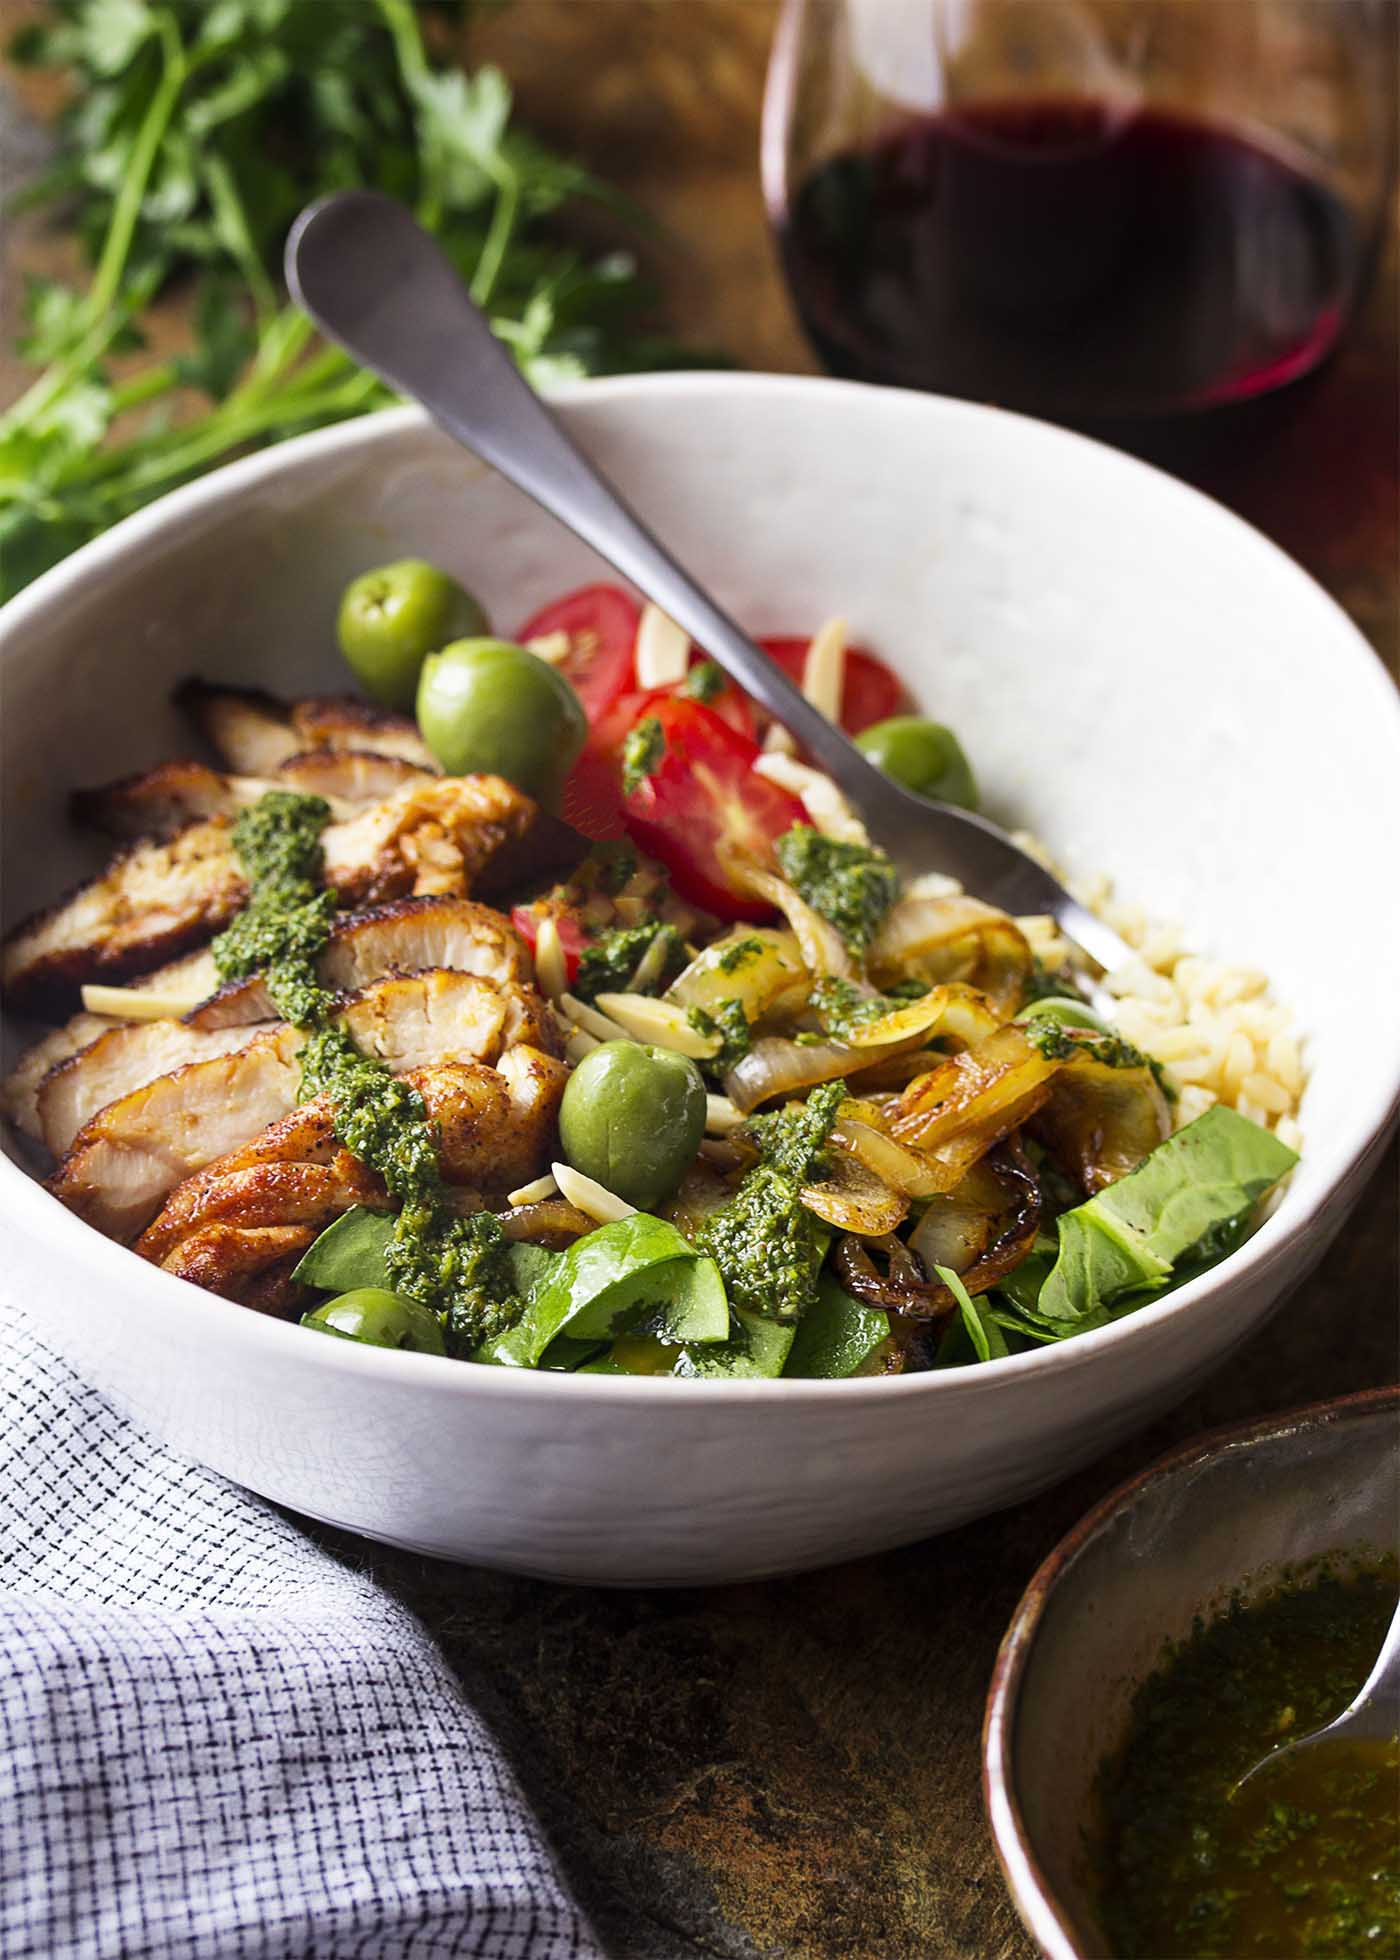 Grilled sliced chicken over rice with onions, greens, tomatoes and olives all in a white bowl.